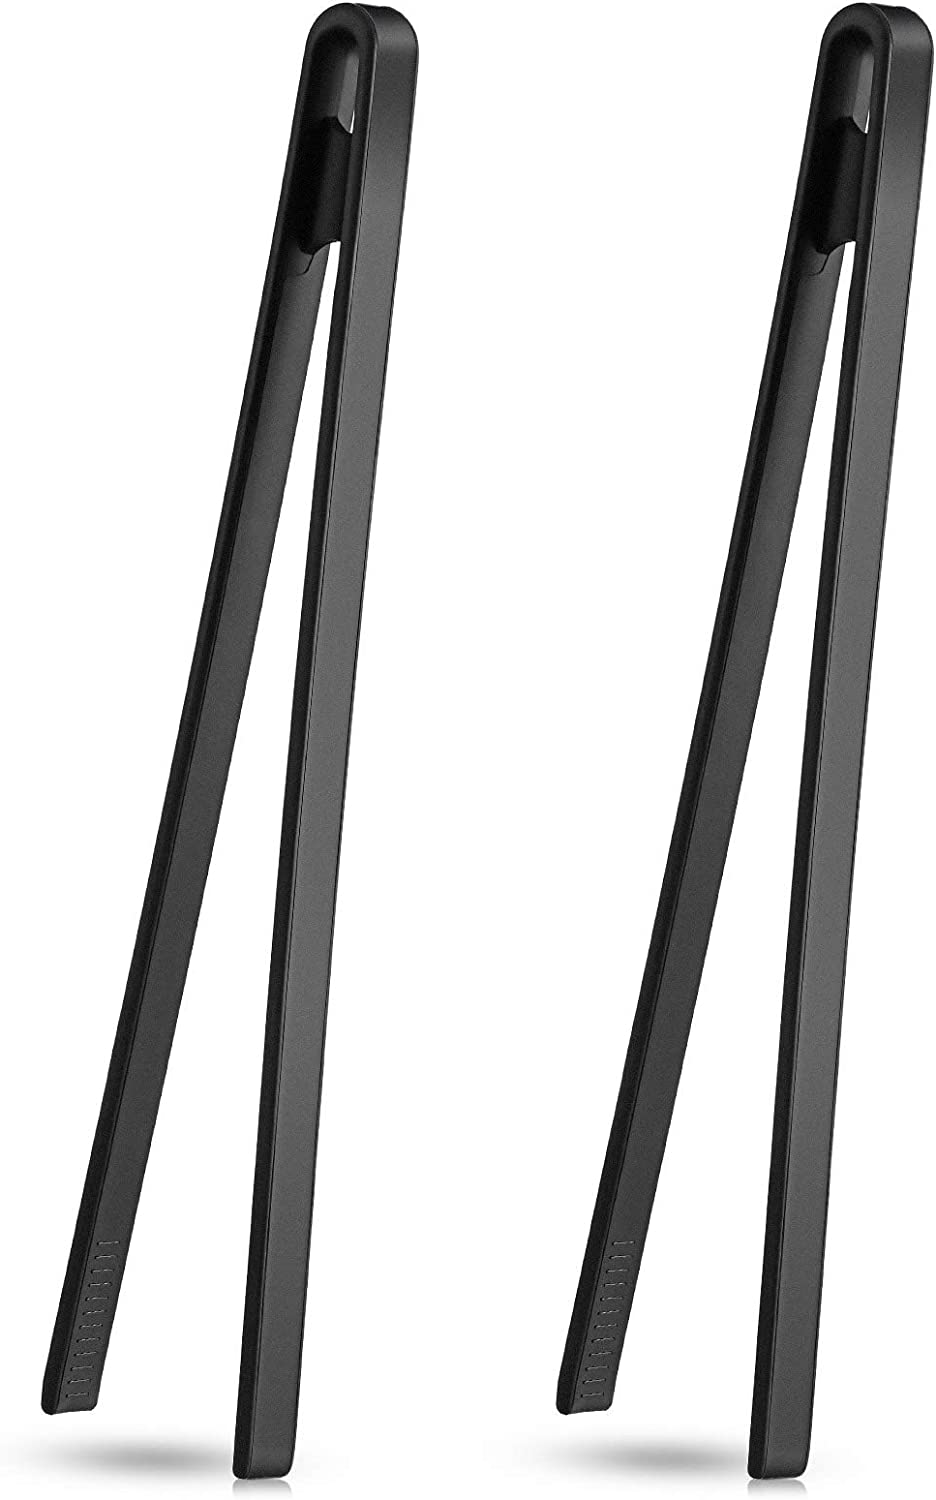 2 Pieces 11.8 inch Silicone Trivet Tongs Non-Stick Silicone Food Tongs Kitchen Cooking Tongs Heat Resistant BBQ Grilling Tongs for Tortillas, and Toaster (Black)